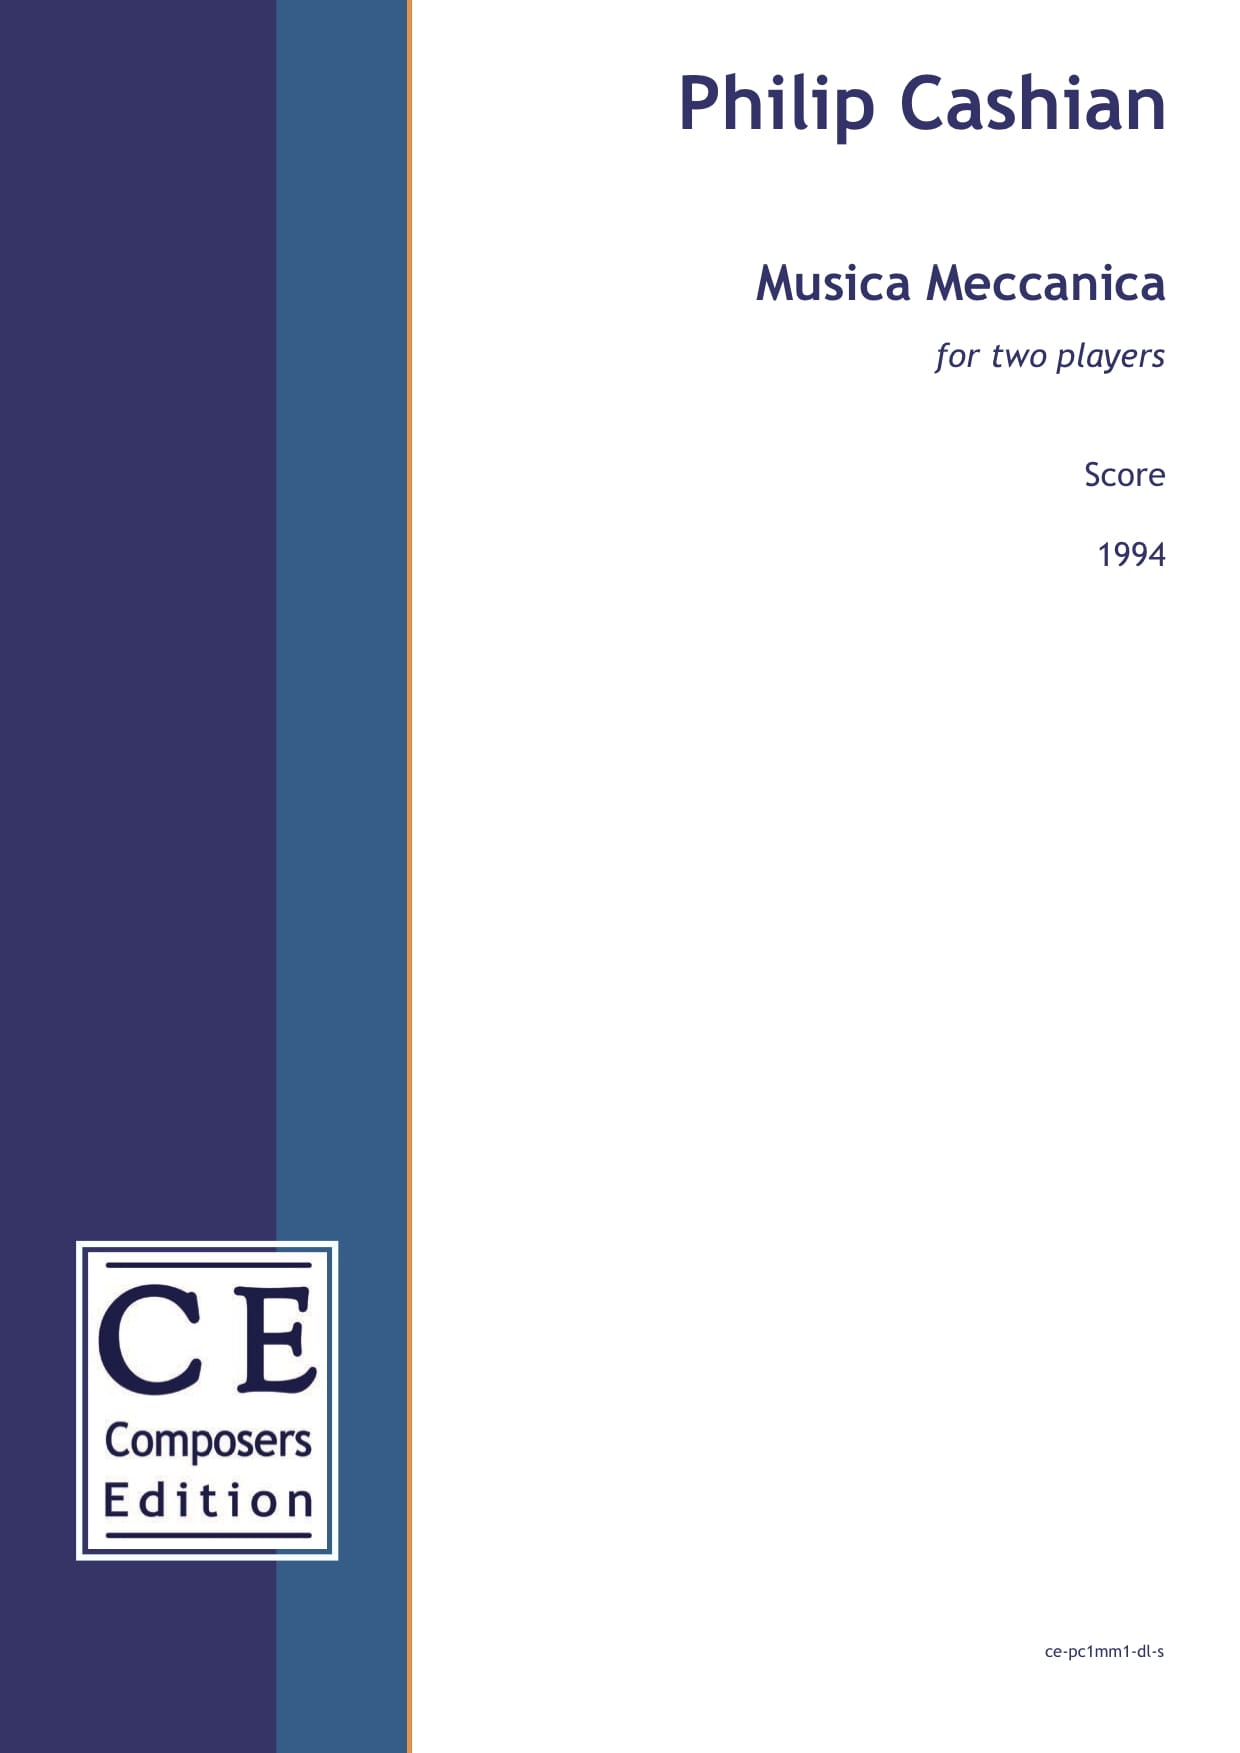 Philip Cashian: Musica Meccanica for two players